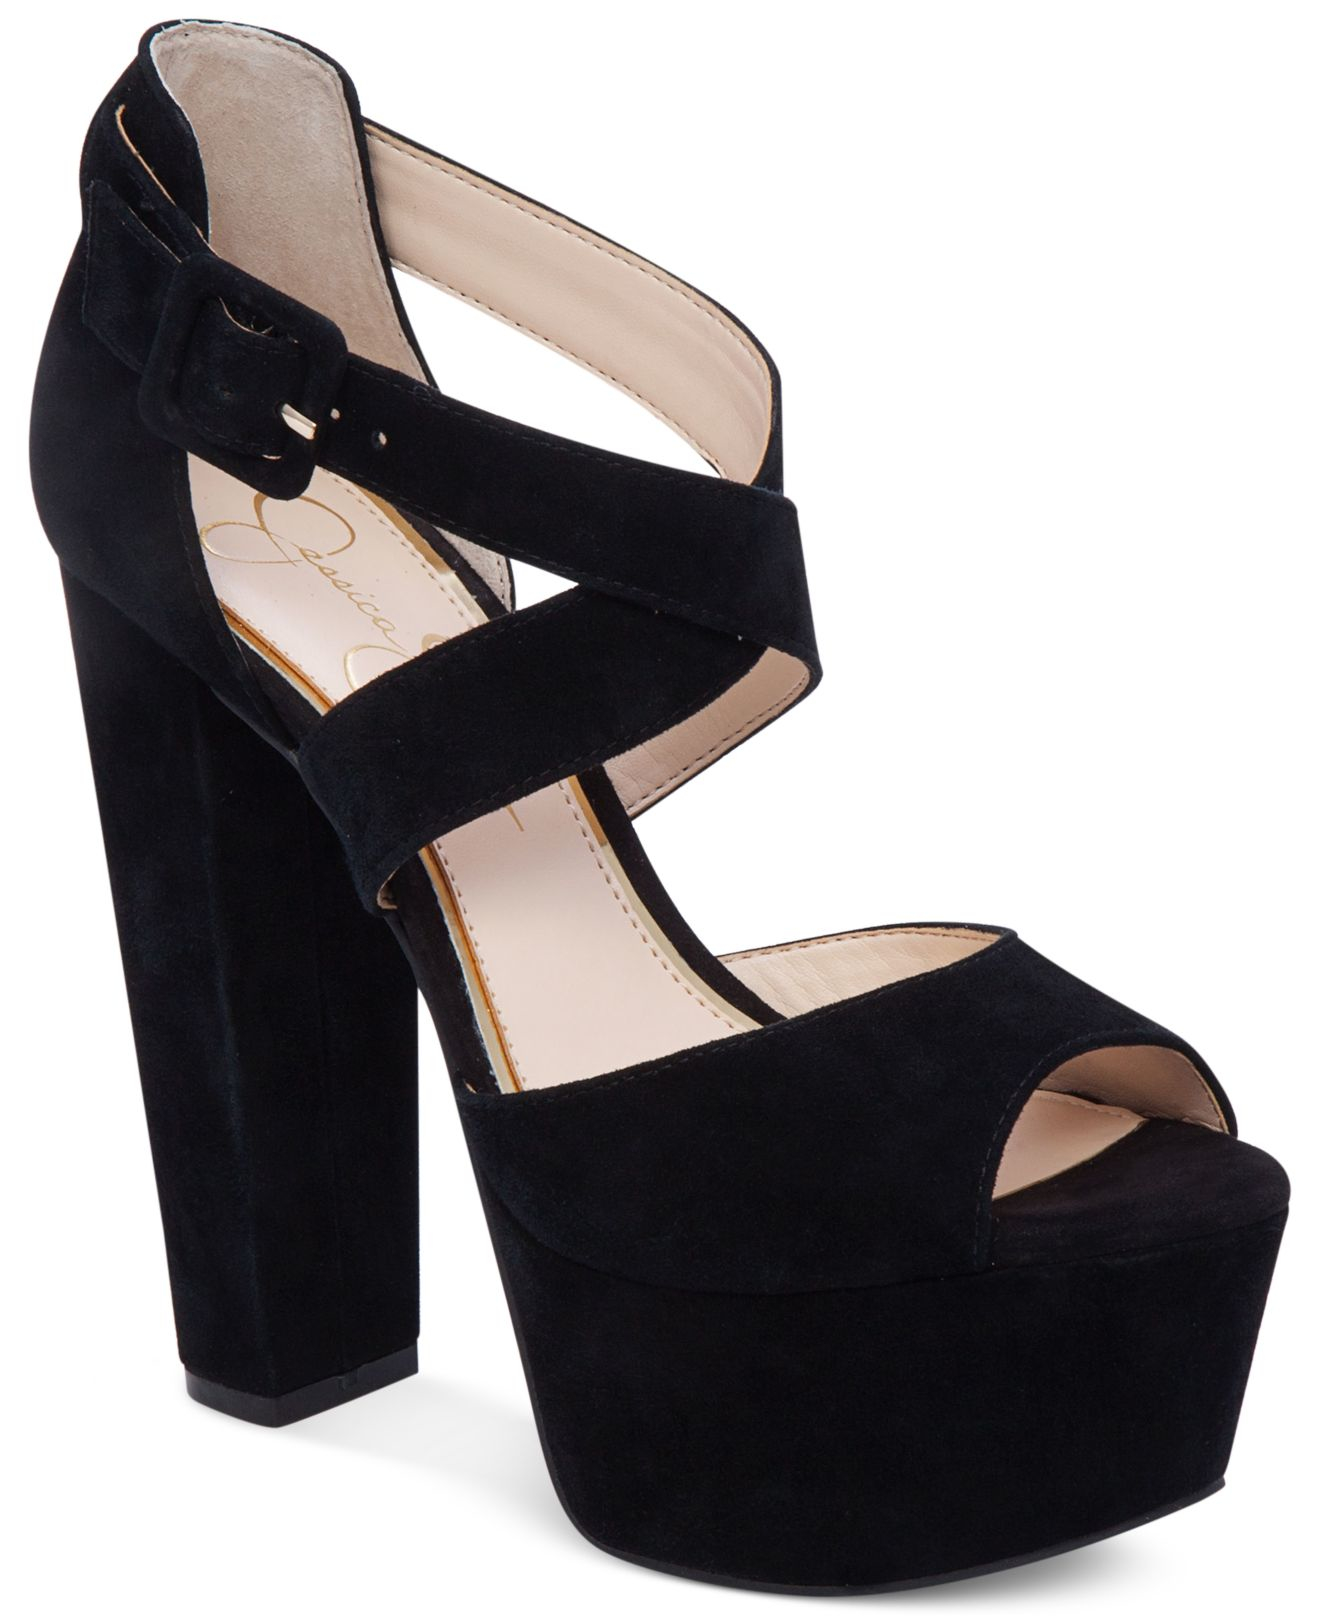 033183aa5d44 Lyst - Jessica Simpson Derian Platform Sandals in Black